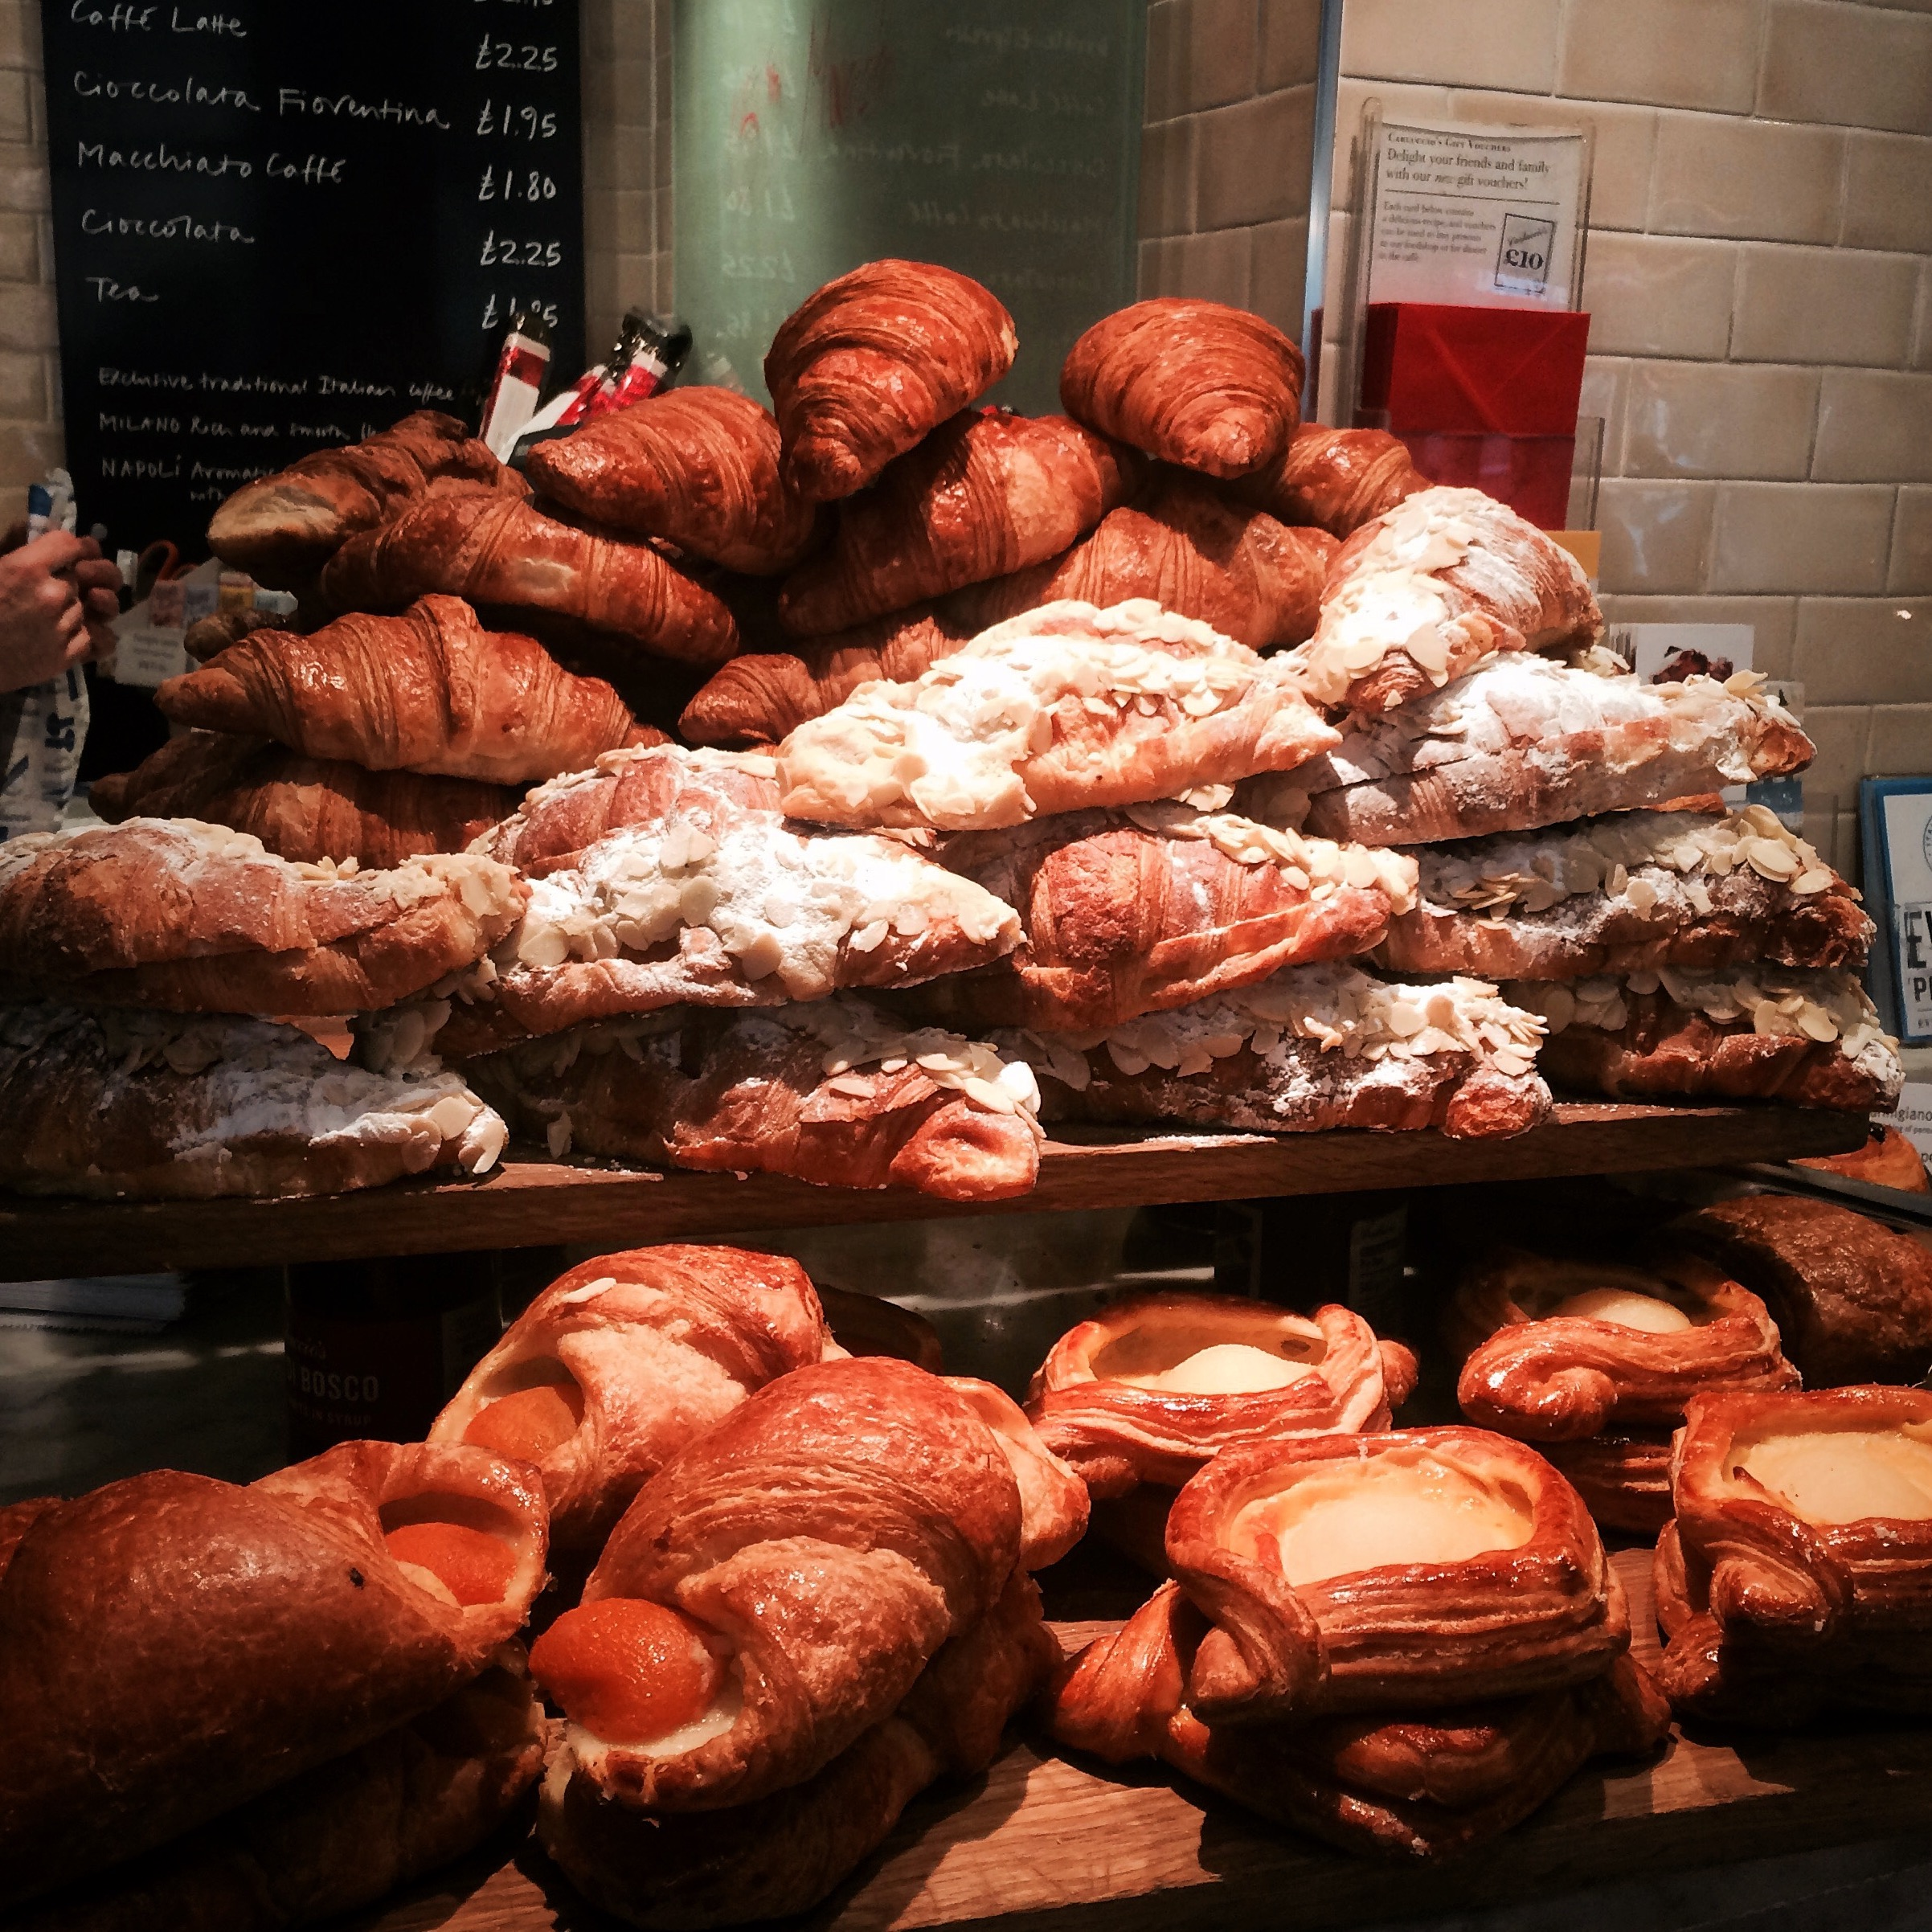 The Almond Croissants and friends at Carluccios